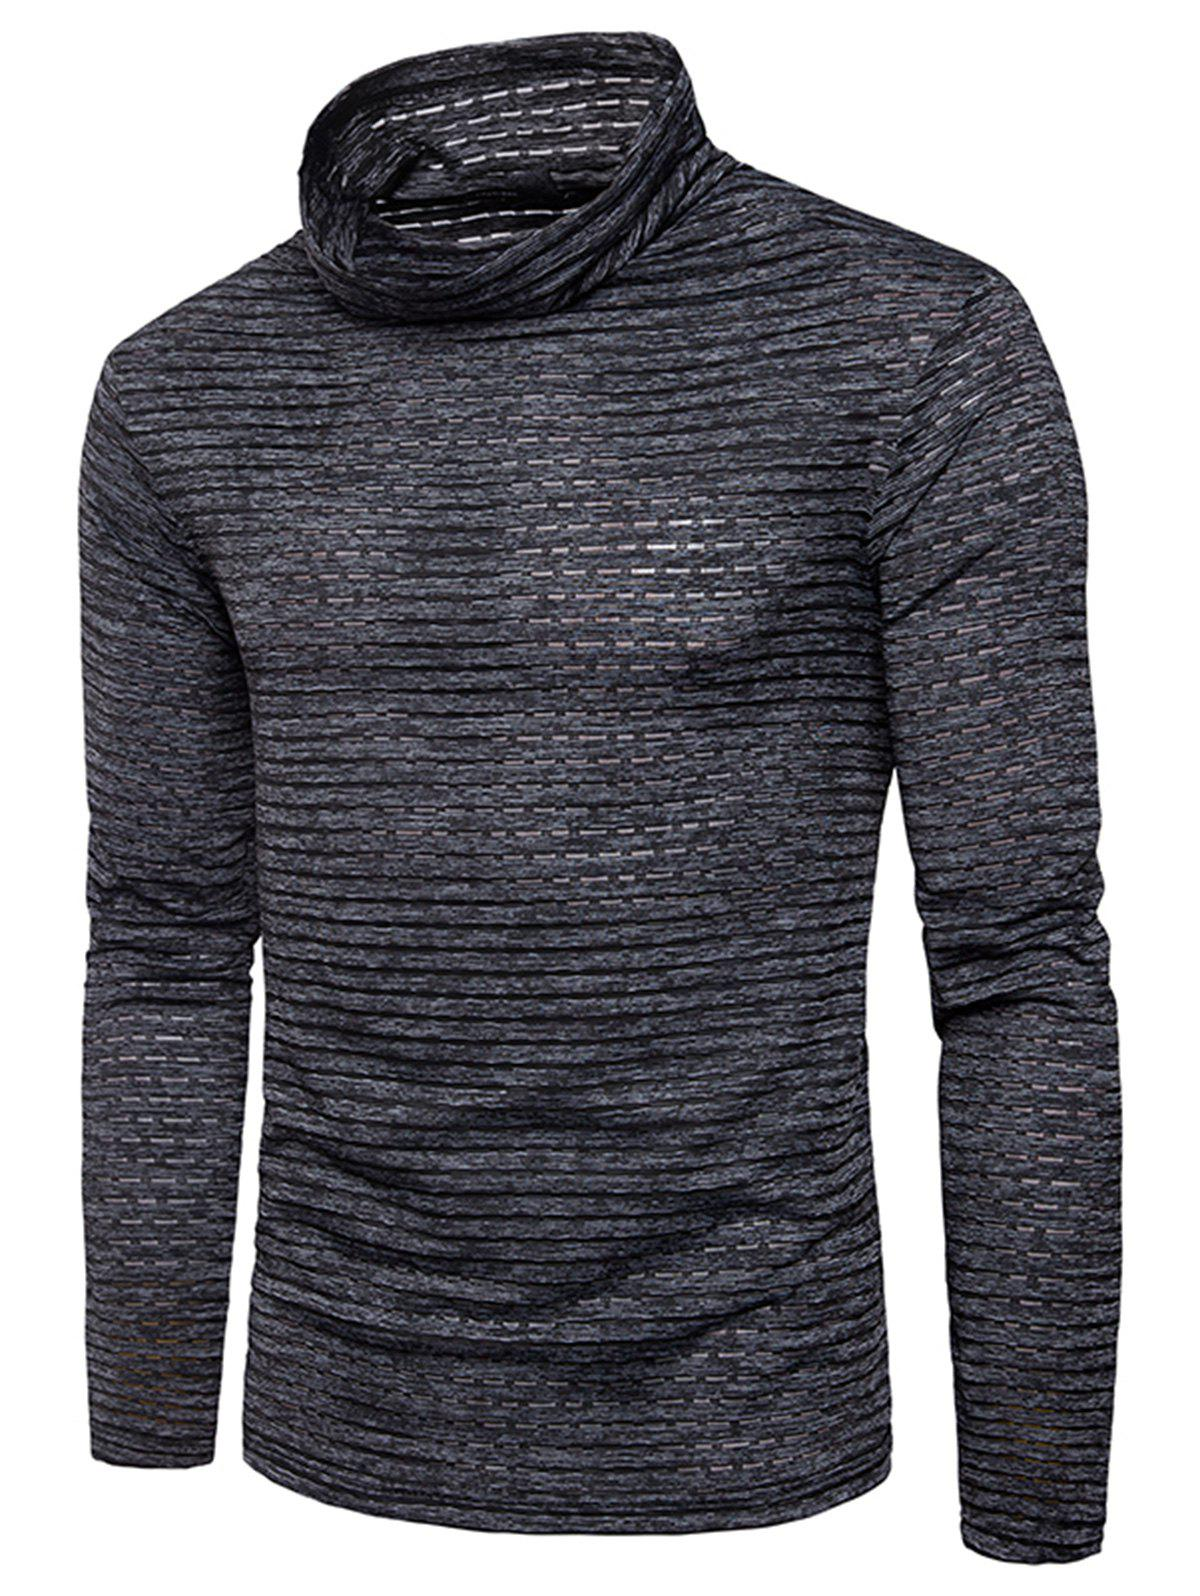 Turtle Neck Stripe Jacquard T-shirt - BLACK 3XL